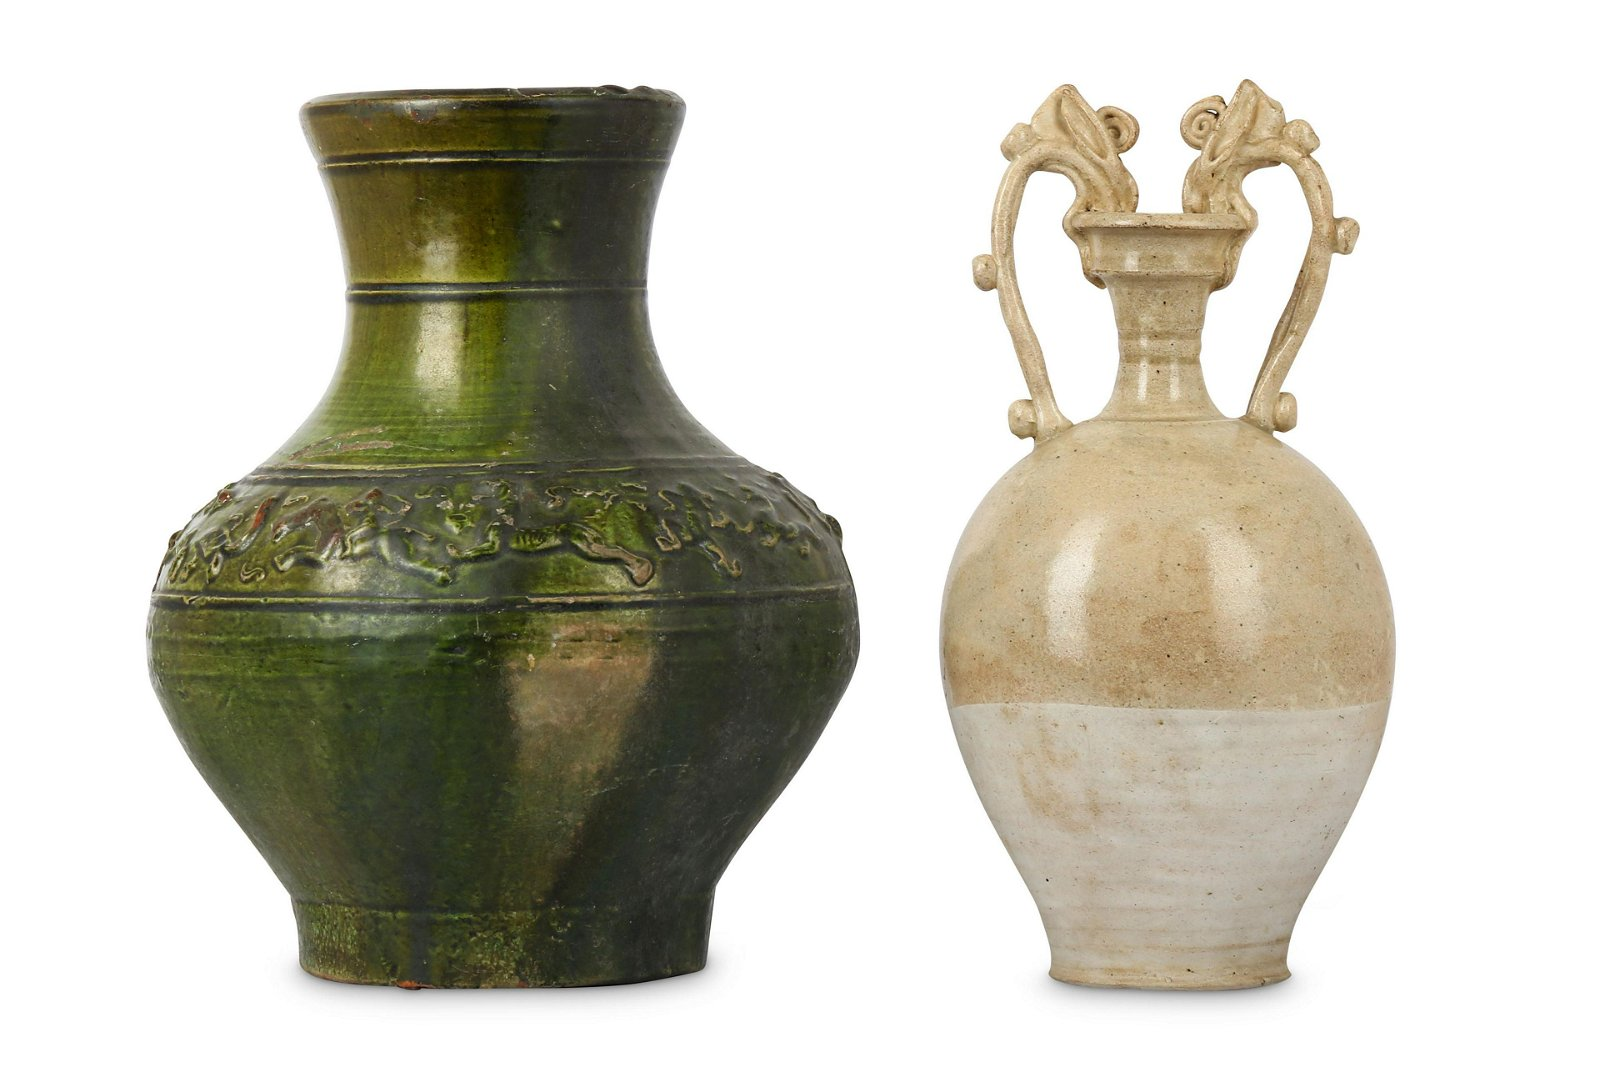 A CHINESE AMPHORA AND A GREEN-GLAZED VASE.